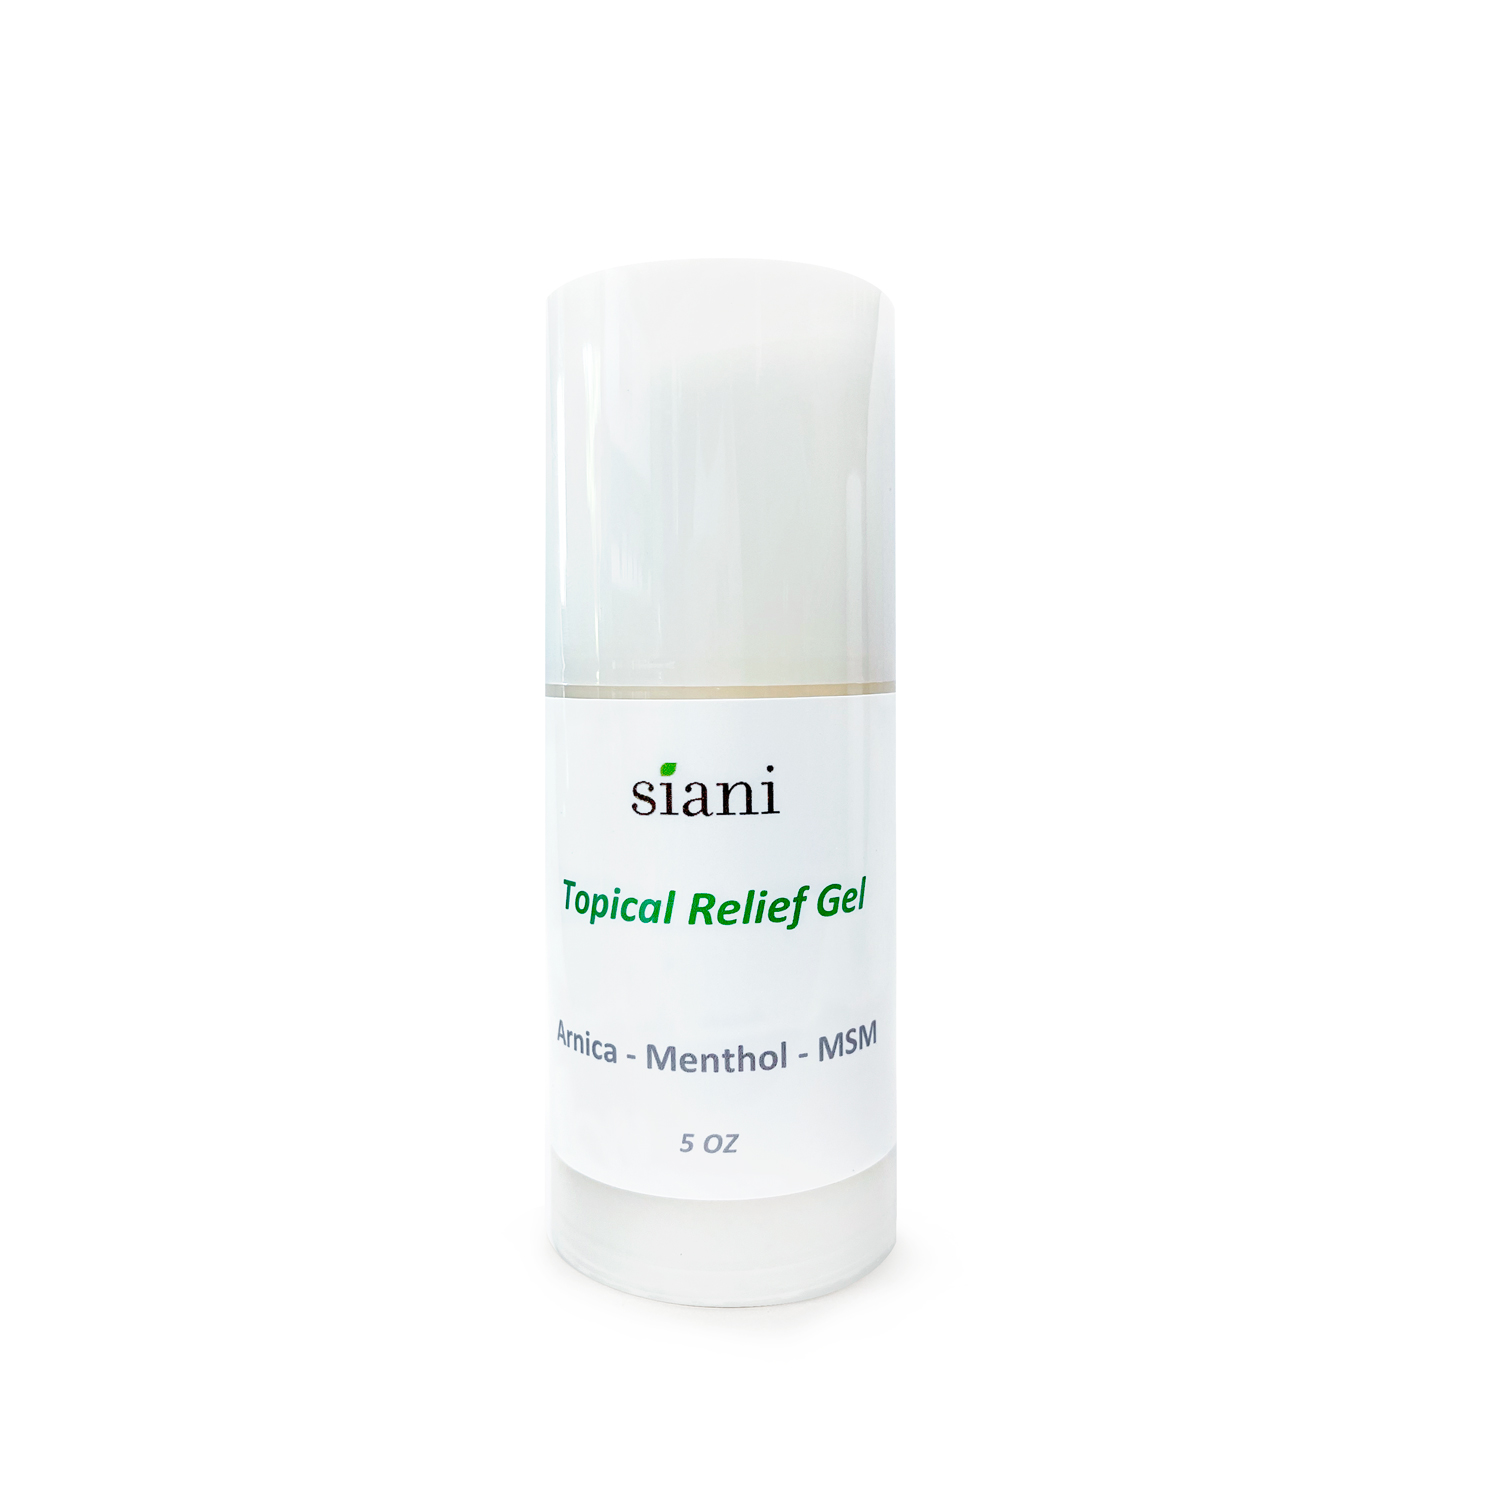 Topical Relief Gel - Our Topical Relief Gel with Arnica, Menthol, MSM helps relieves pain, improves mobility and reduces stiffness. 98% Natural and 70% Organic. | Siani Probiotic Body Care